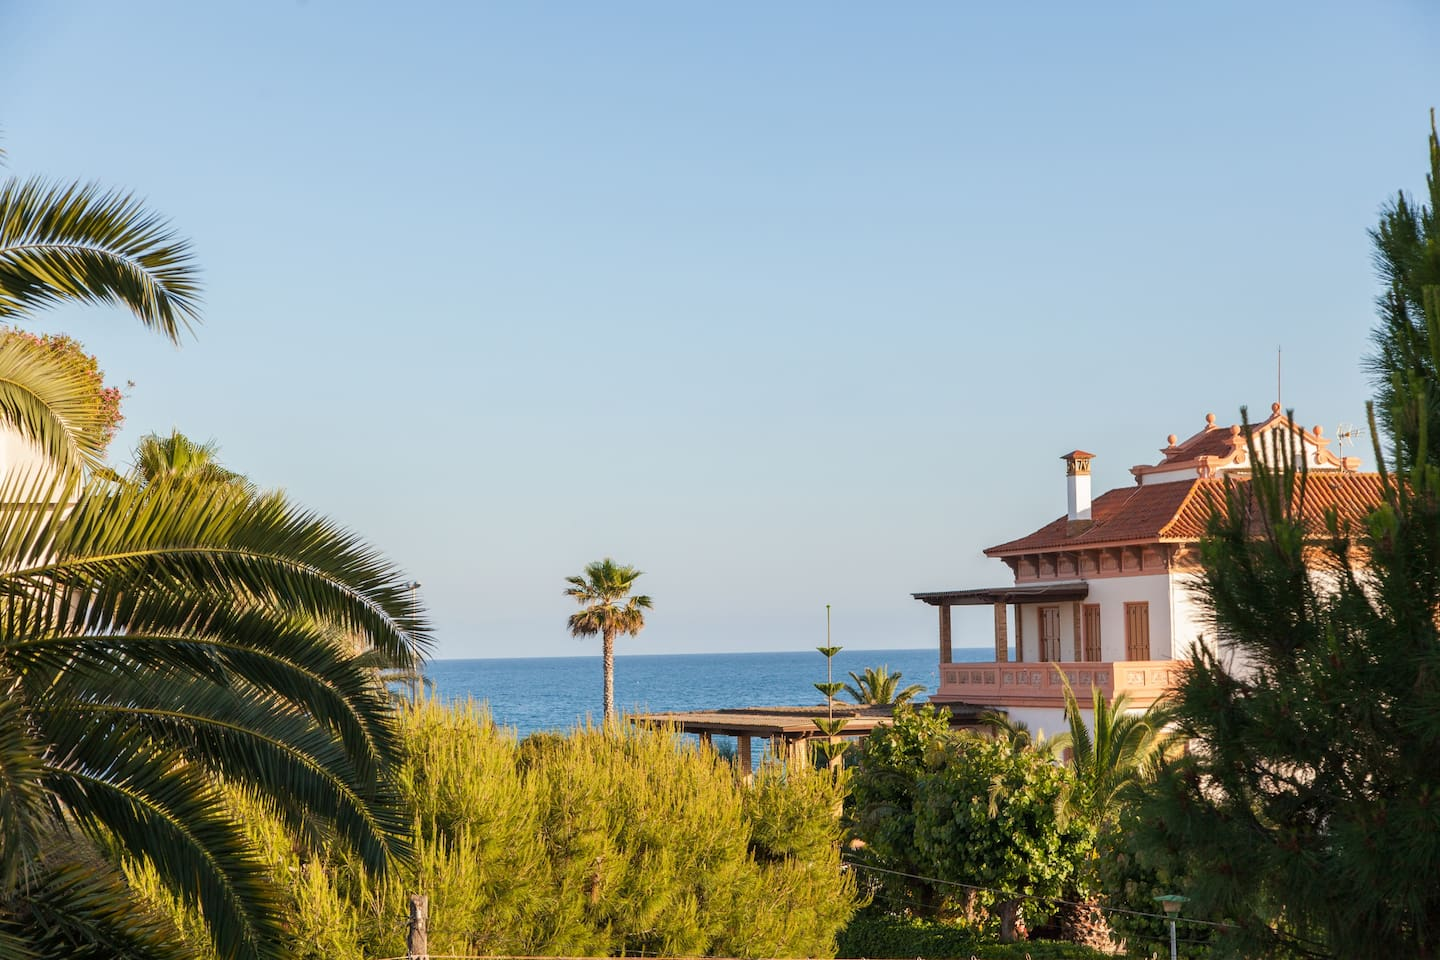 Sitges Villa Tupinetti with view on Sea. At 100 meters from Beach- Sitges Paseo, and 800 meters from Sitges Center City.  Villa renewed on 2018 year.  Belong to a fundation.  One of our Sitges Villas. Weekly Villas.